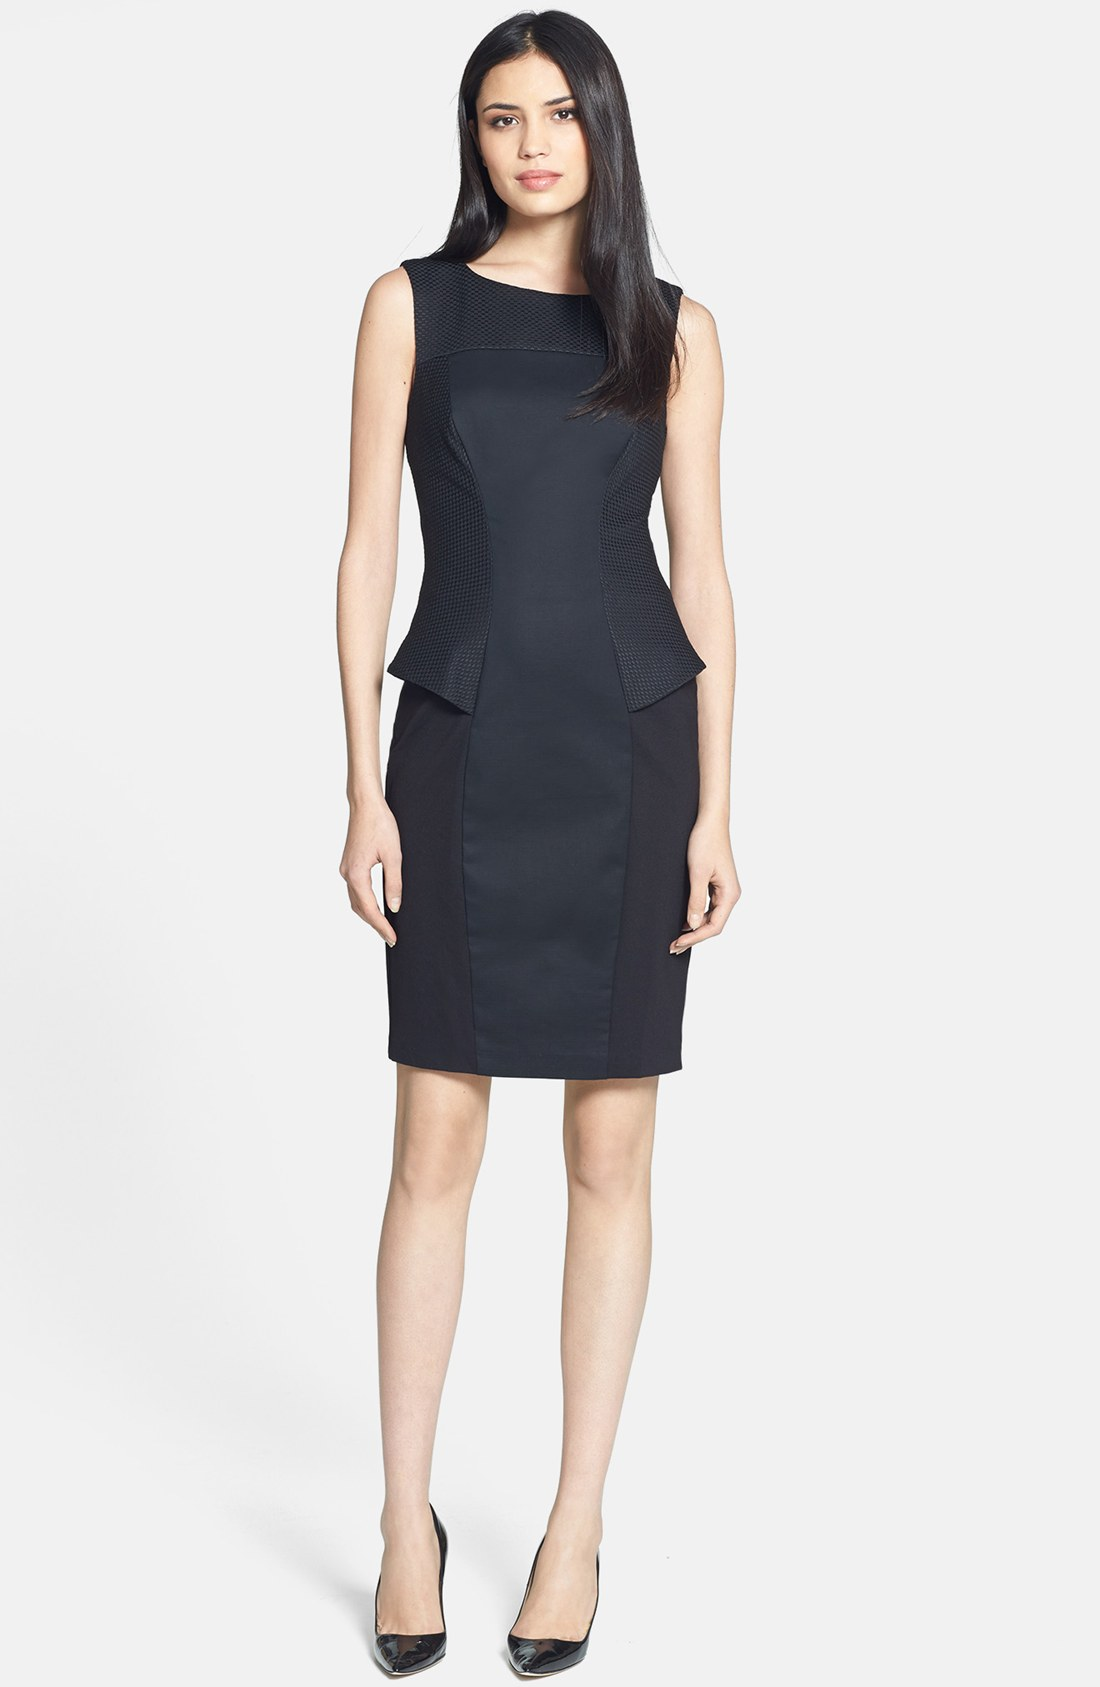 Nordstrom Ted Baker Womens Clothing